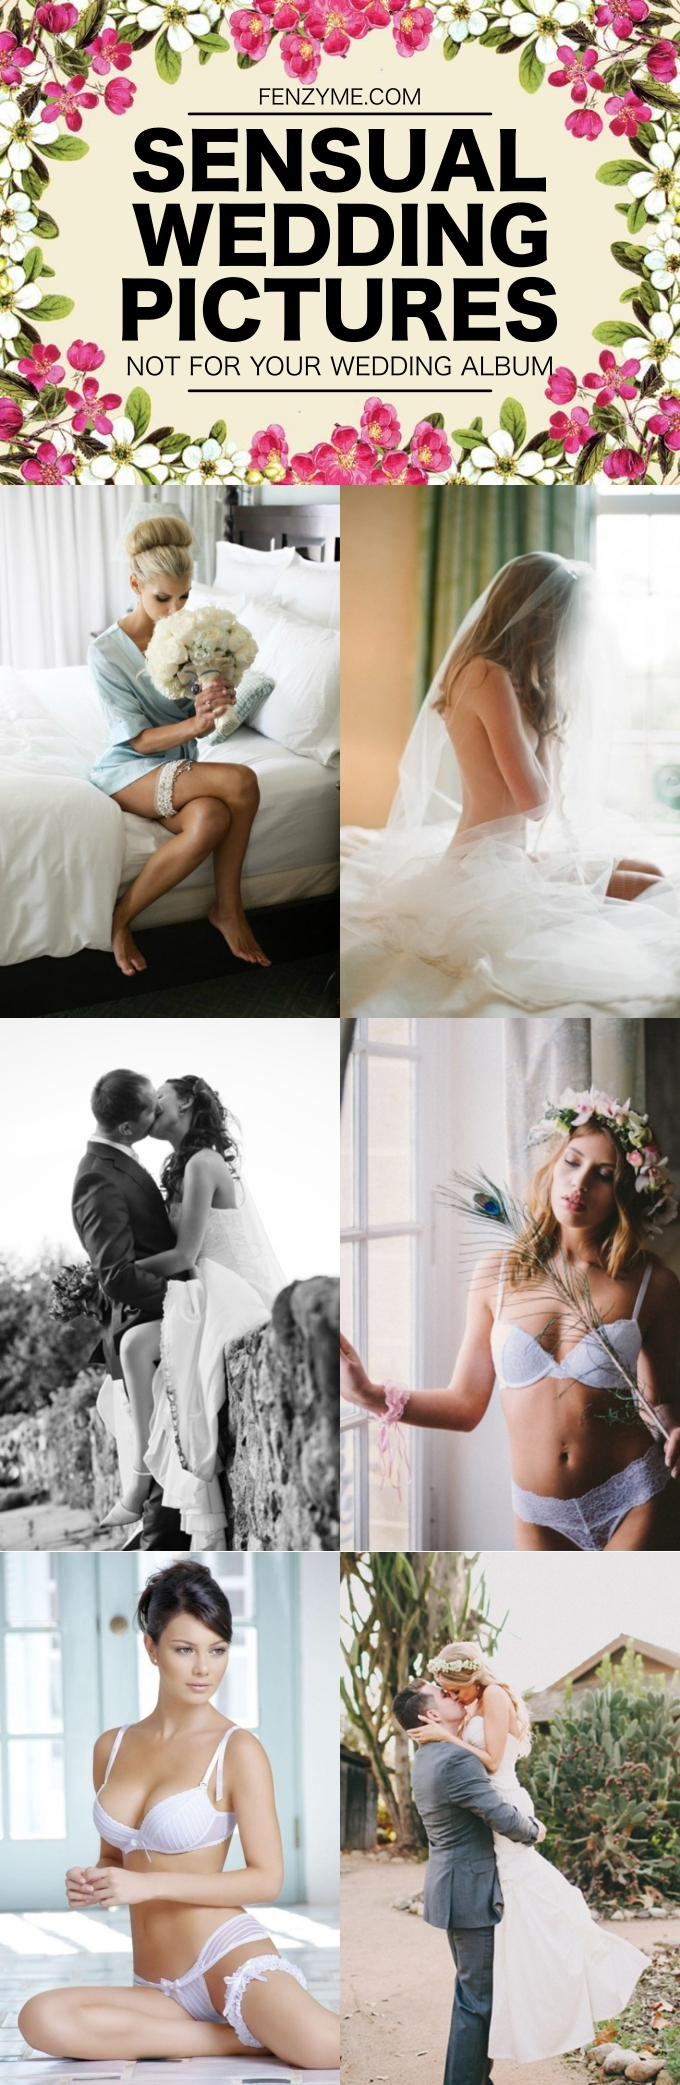 sensual wedding pictures not for your wedding album